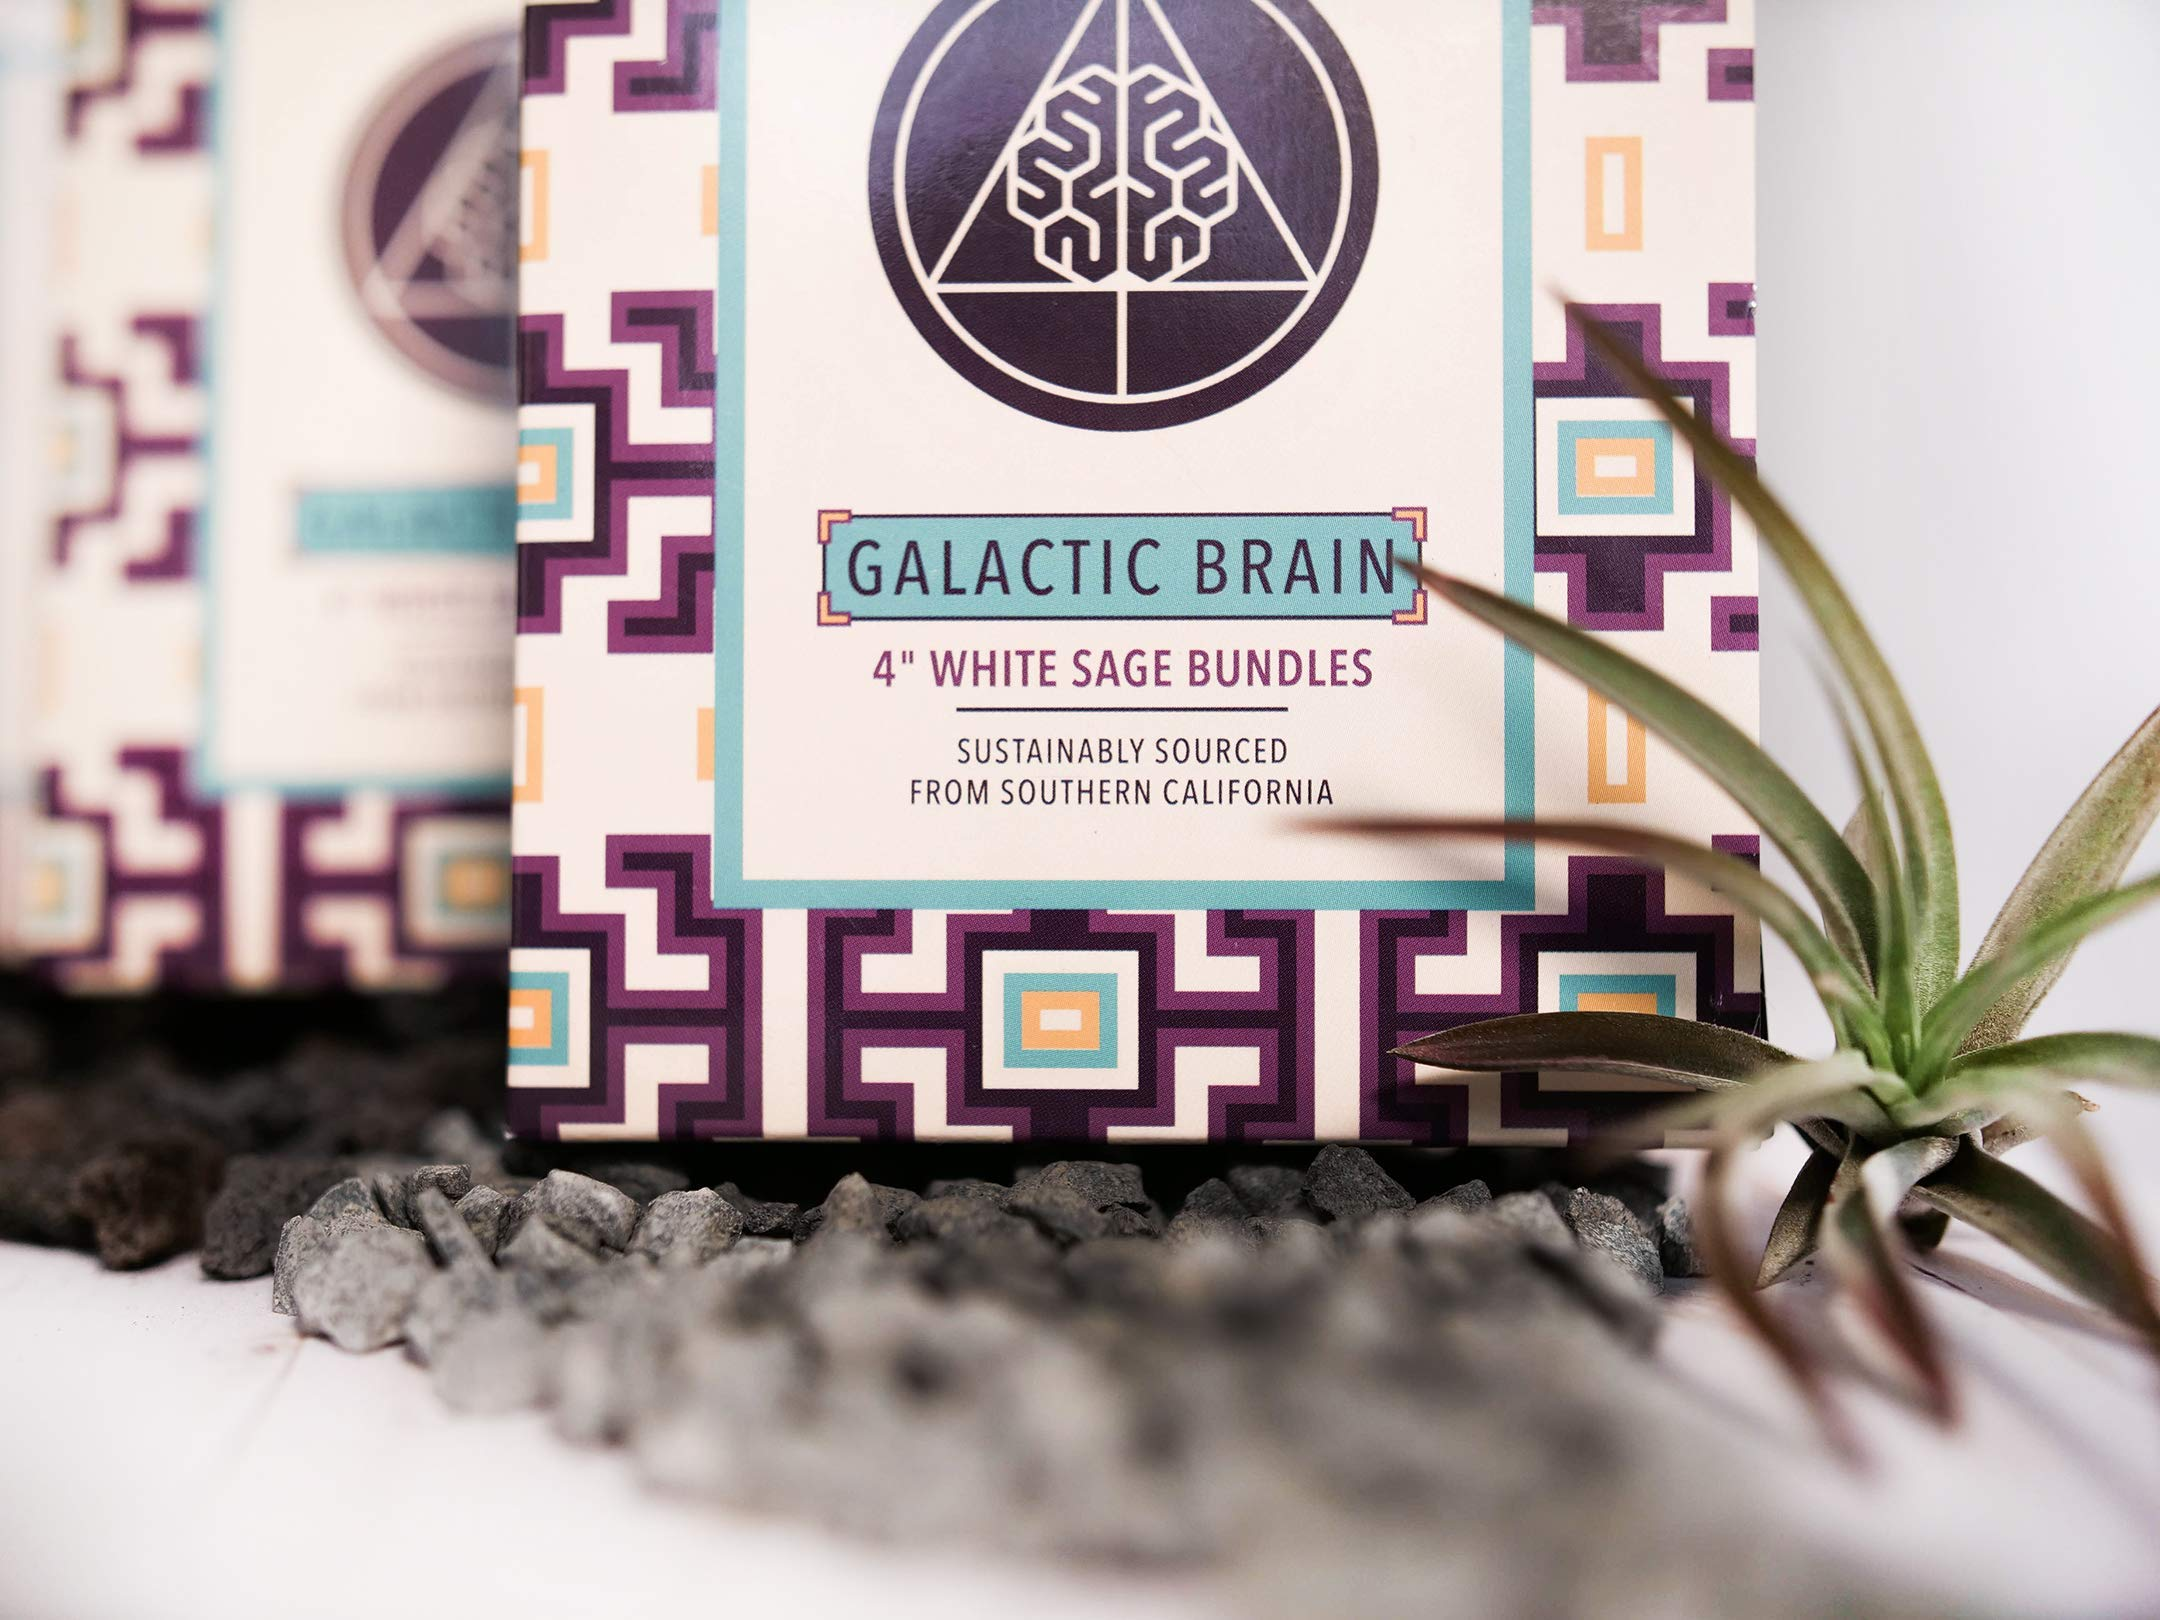 Galactic Brain 4 Inch White Sage Bundles | 3 White Sage Smudge Sticks with 2 Sample Palo Santo Sticks and 1 Selenite Crystal in Gift Set for Cleansing Your Home by Galactic Brain (Image #6)